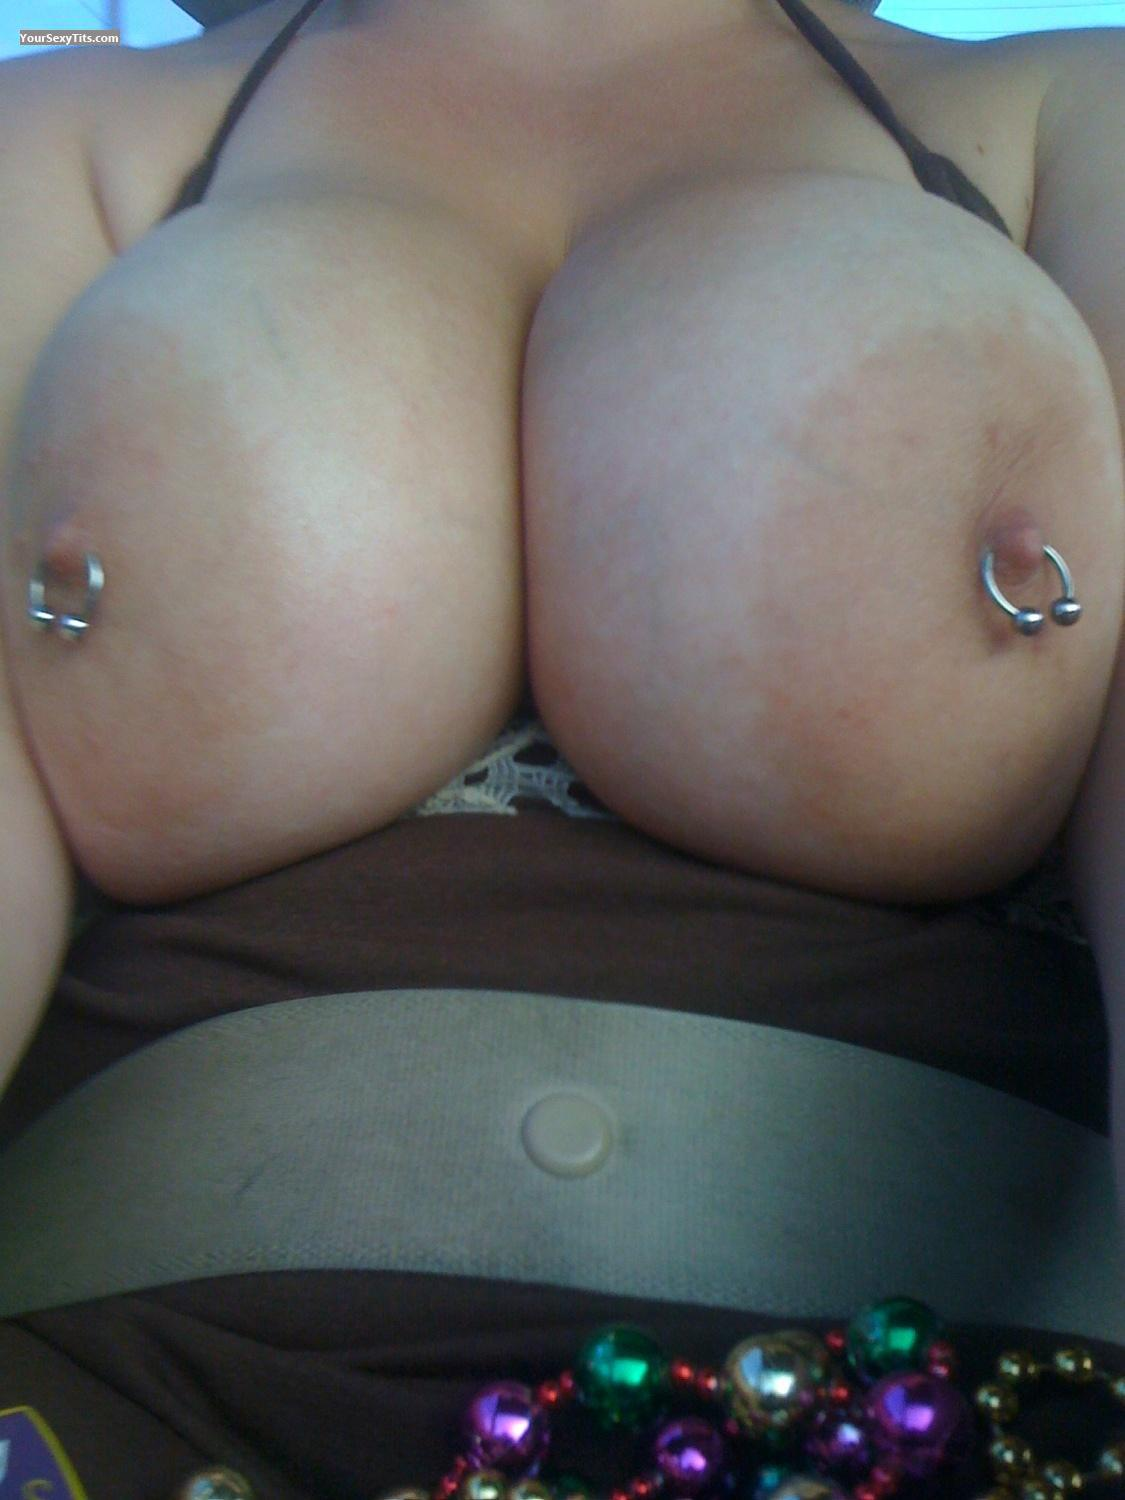 My Very big Tits Selfie by SexyG